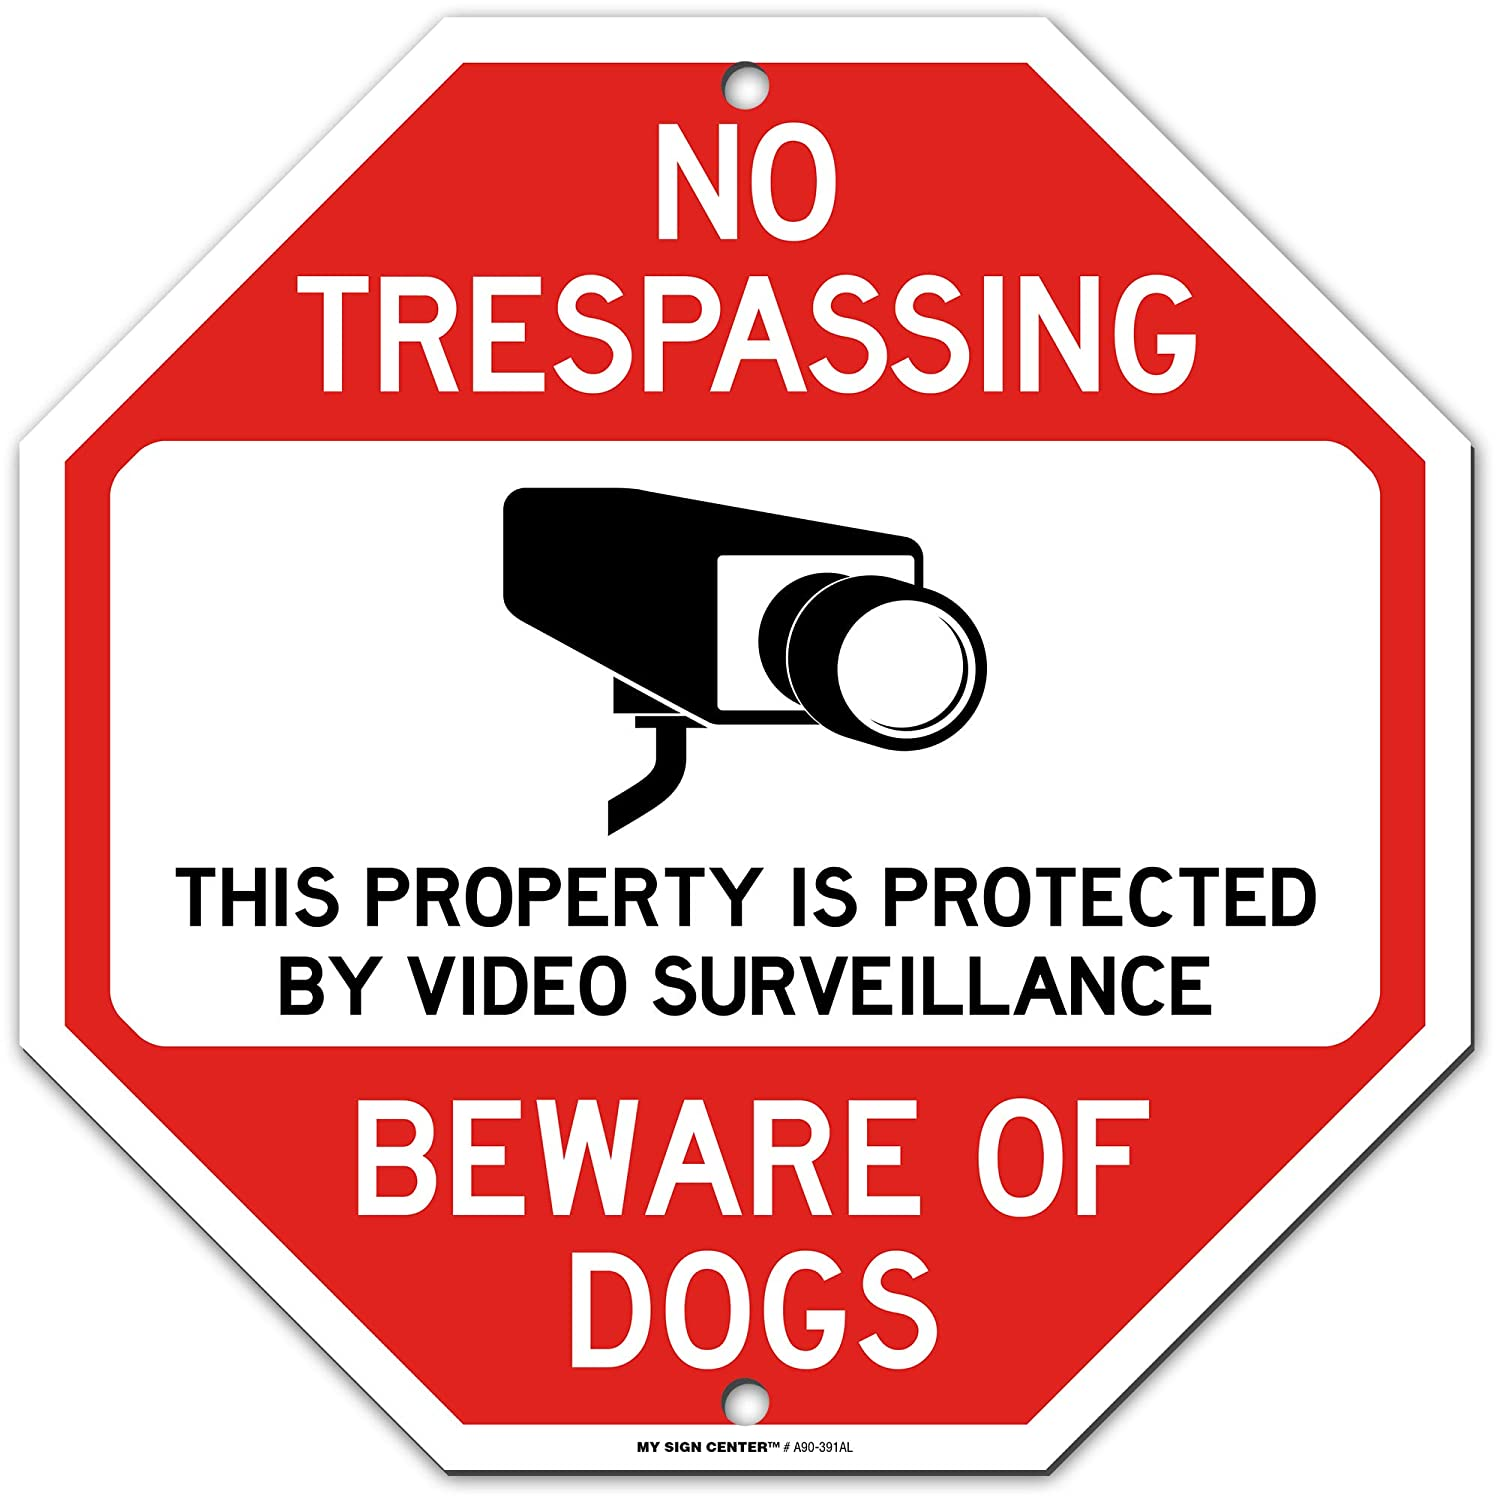 "Dog Warning No Trespassing Video Surveillance Sign, Octagon Shaped, 11"" x 11"" Industrial Grade Aluminum, Easy Mounting, Rust-Free/Fade Resistance, Indoor/Outdoor, USA Made by MY SIGN CENTER"